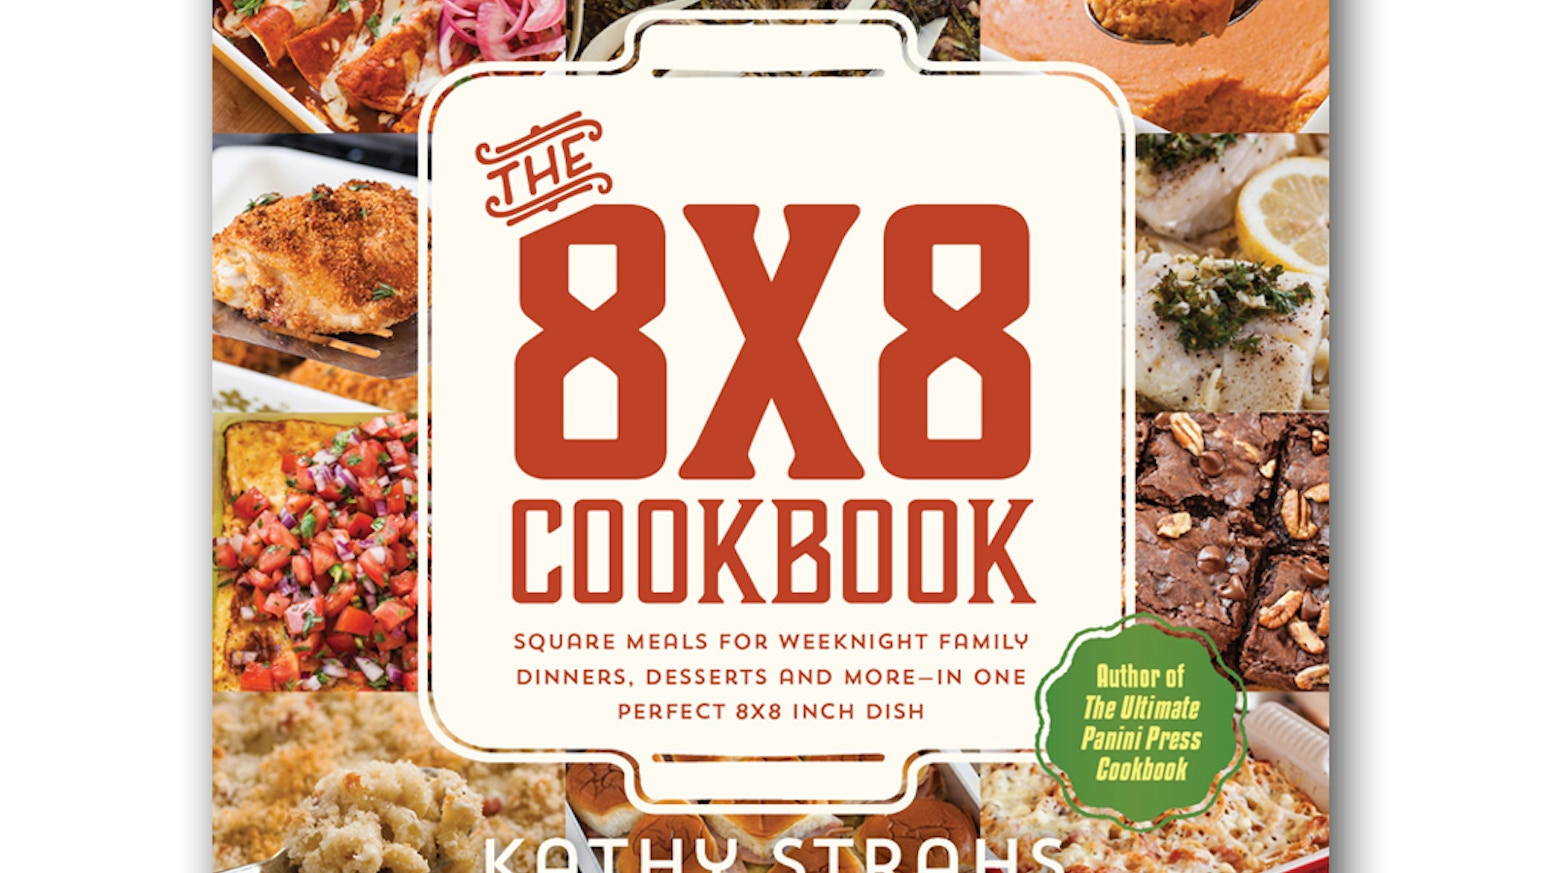 The 8x8 cookbook square meals for weeknight dinner by kathy strahs getting a delicious square meal on your dinner table just got a whole lot forumfinder Gallery